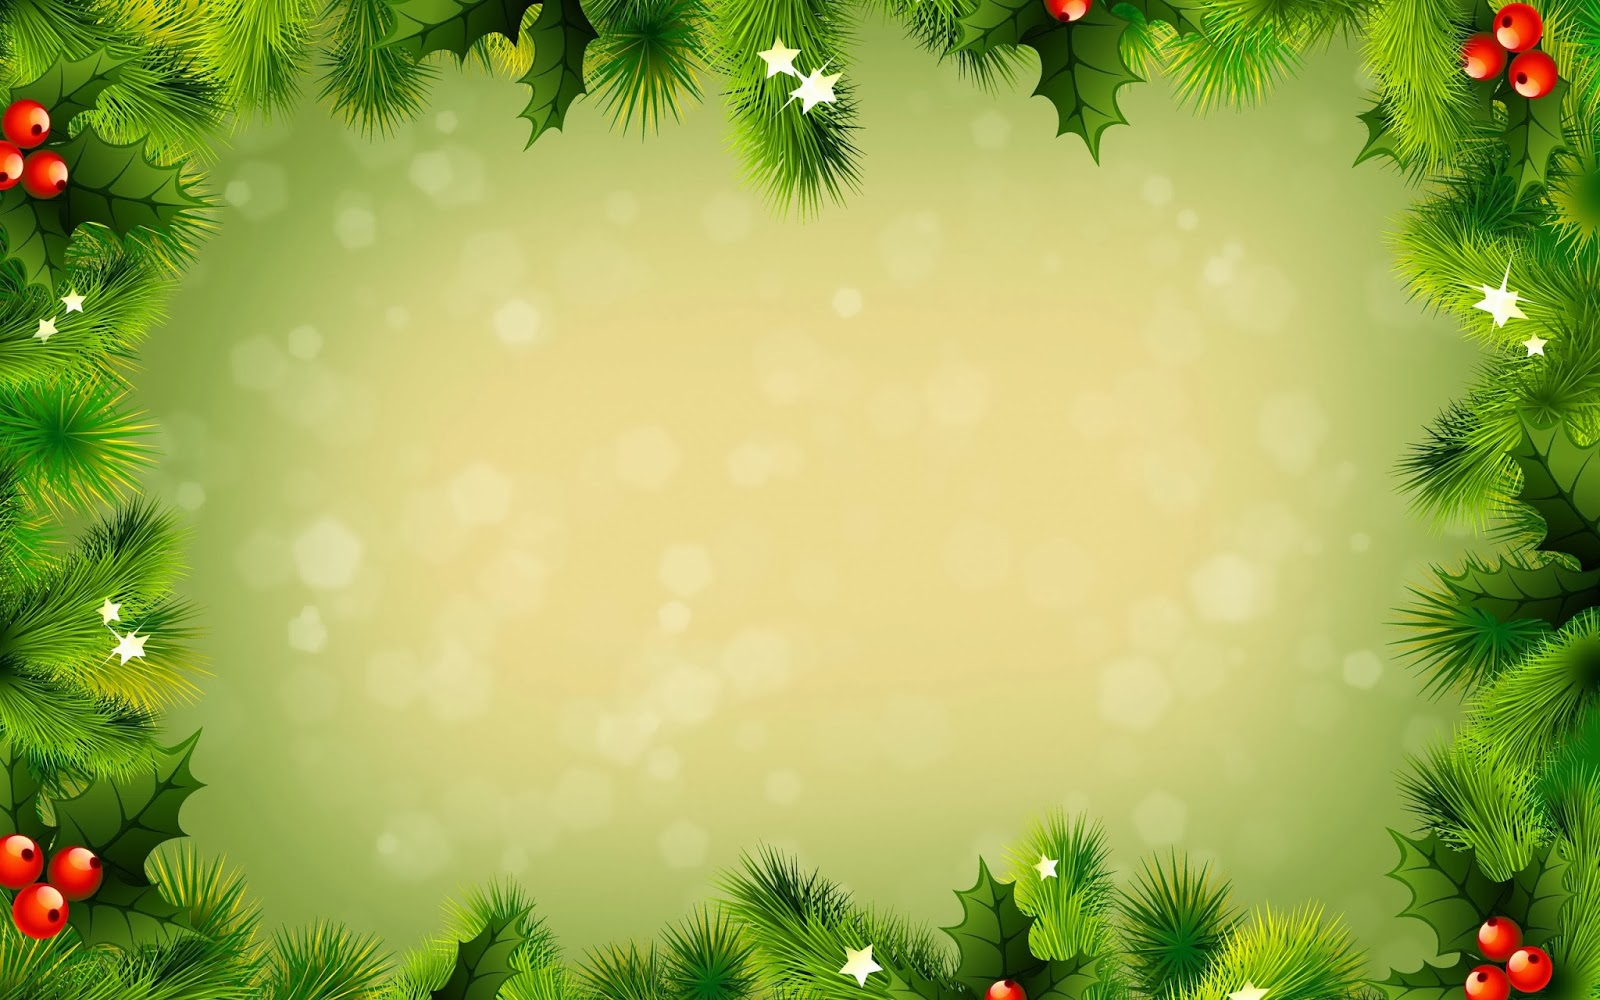 Christmas Card Background.Background Christmas Powerpoint Backgrounds For Free